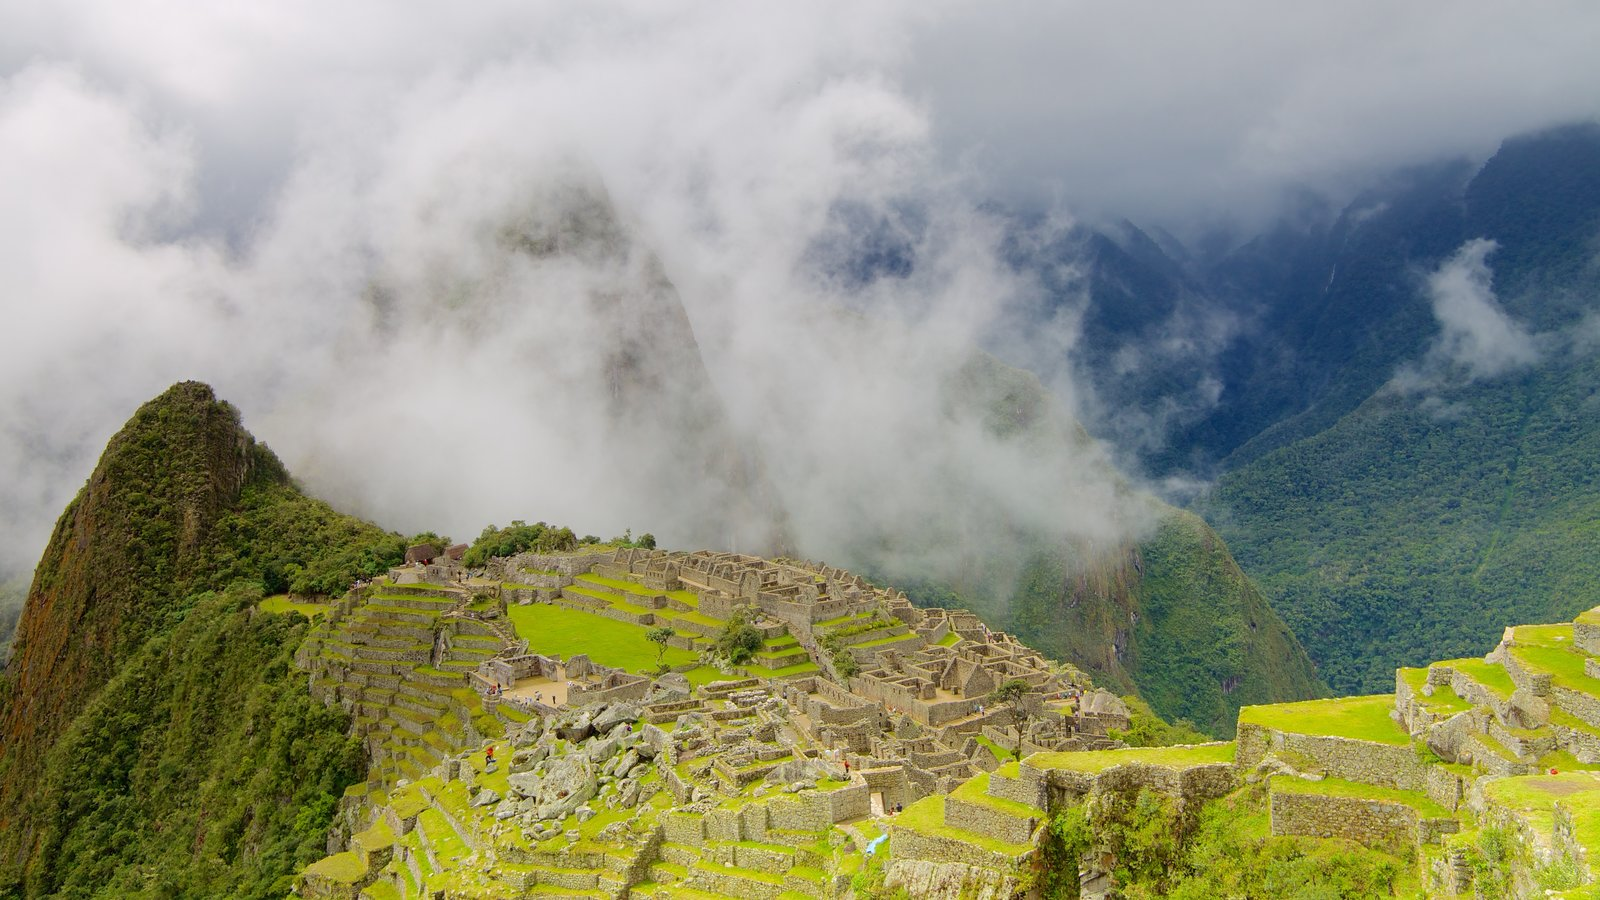 Machu Picchu showing mountains, mist or fog and building ruins